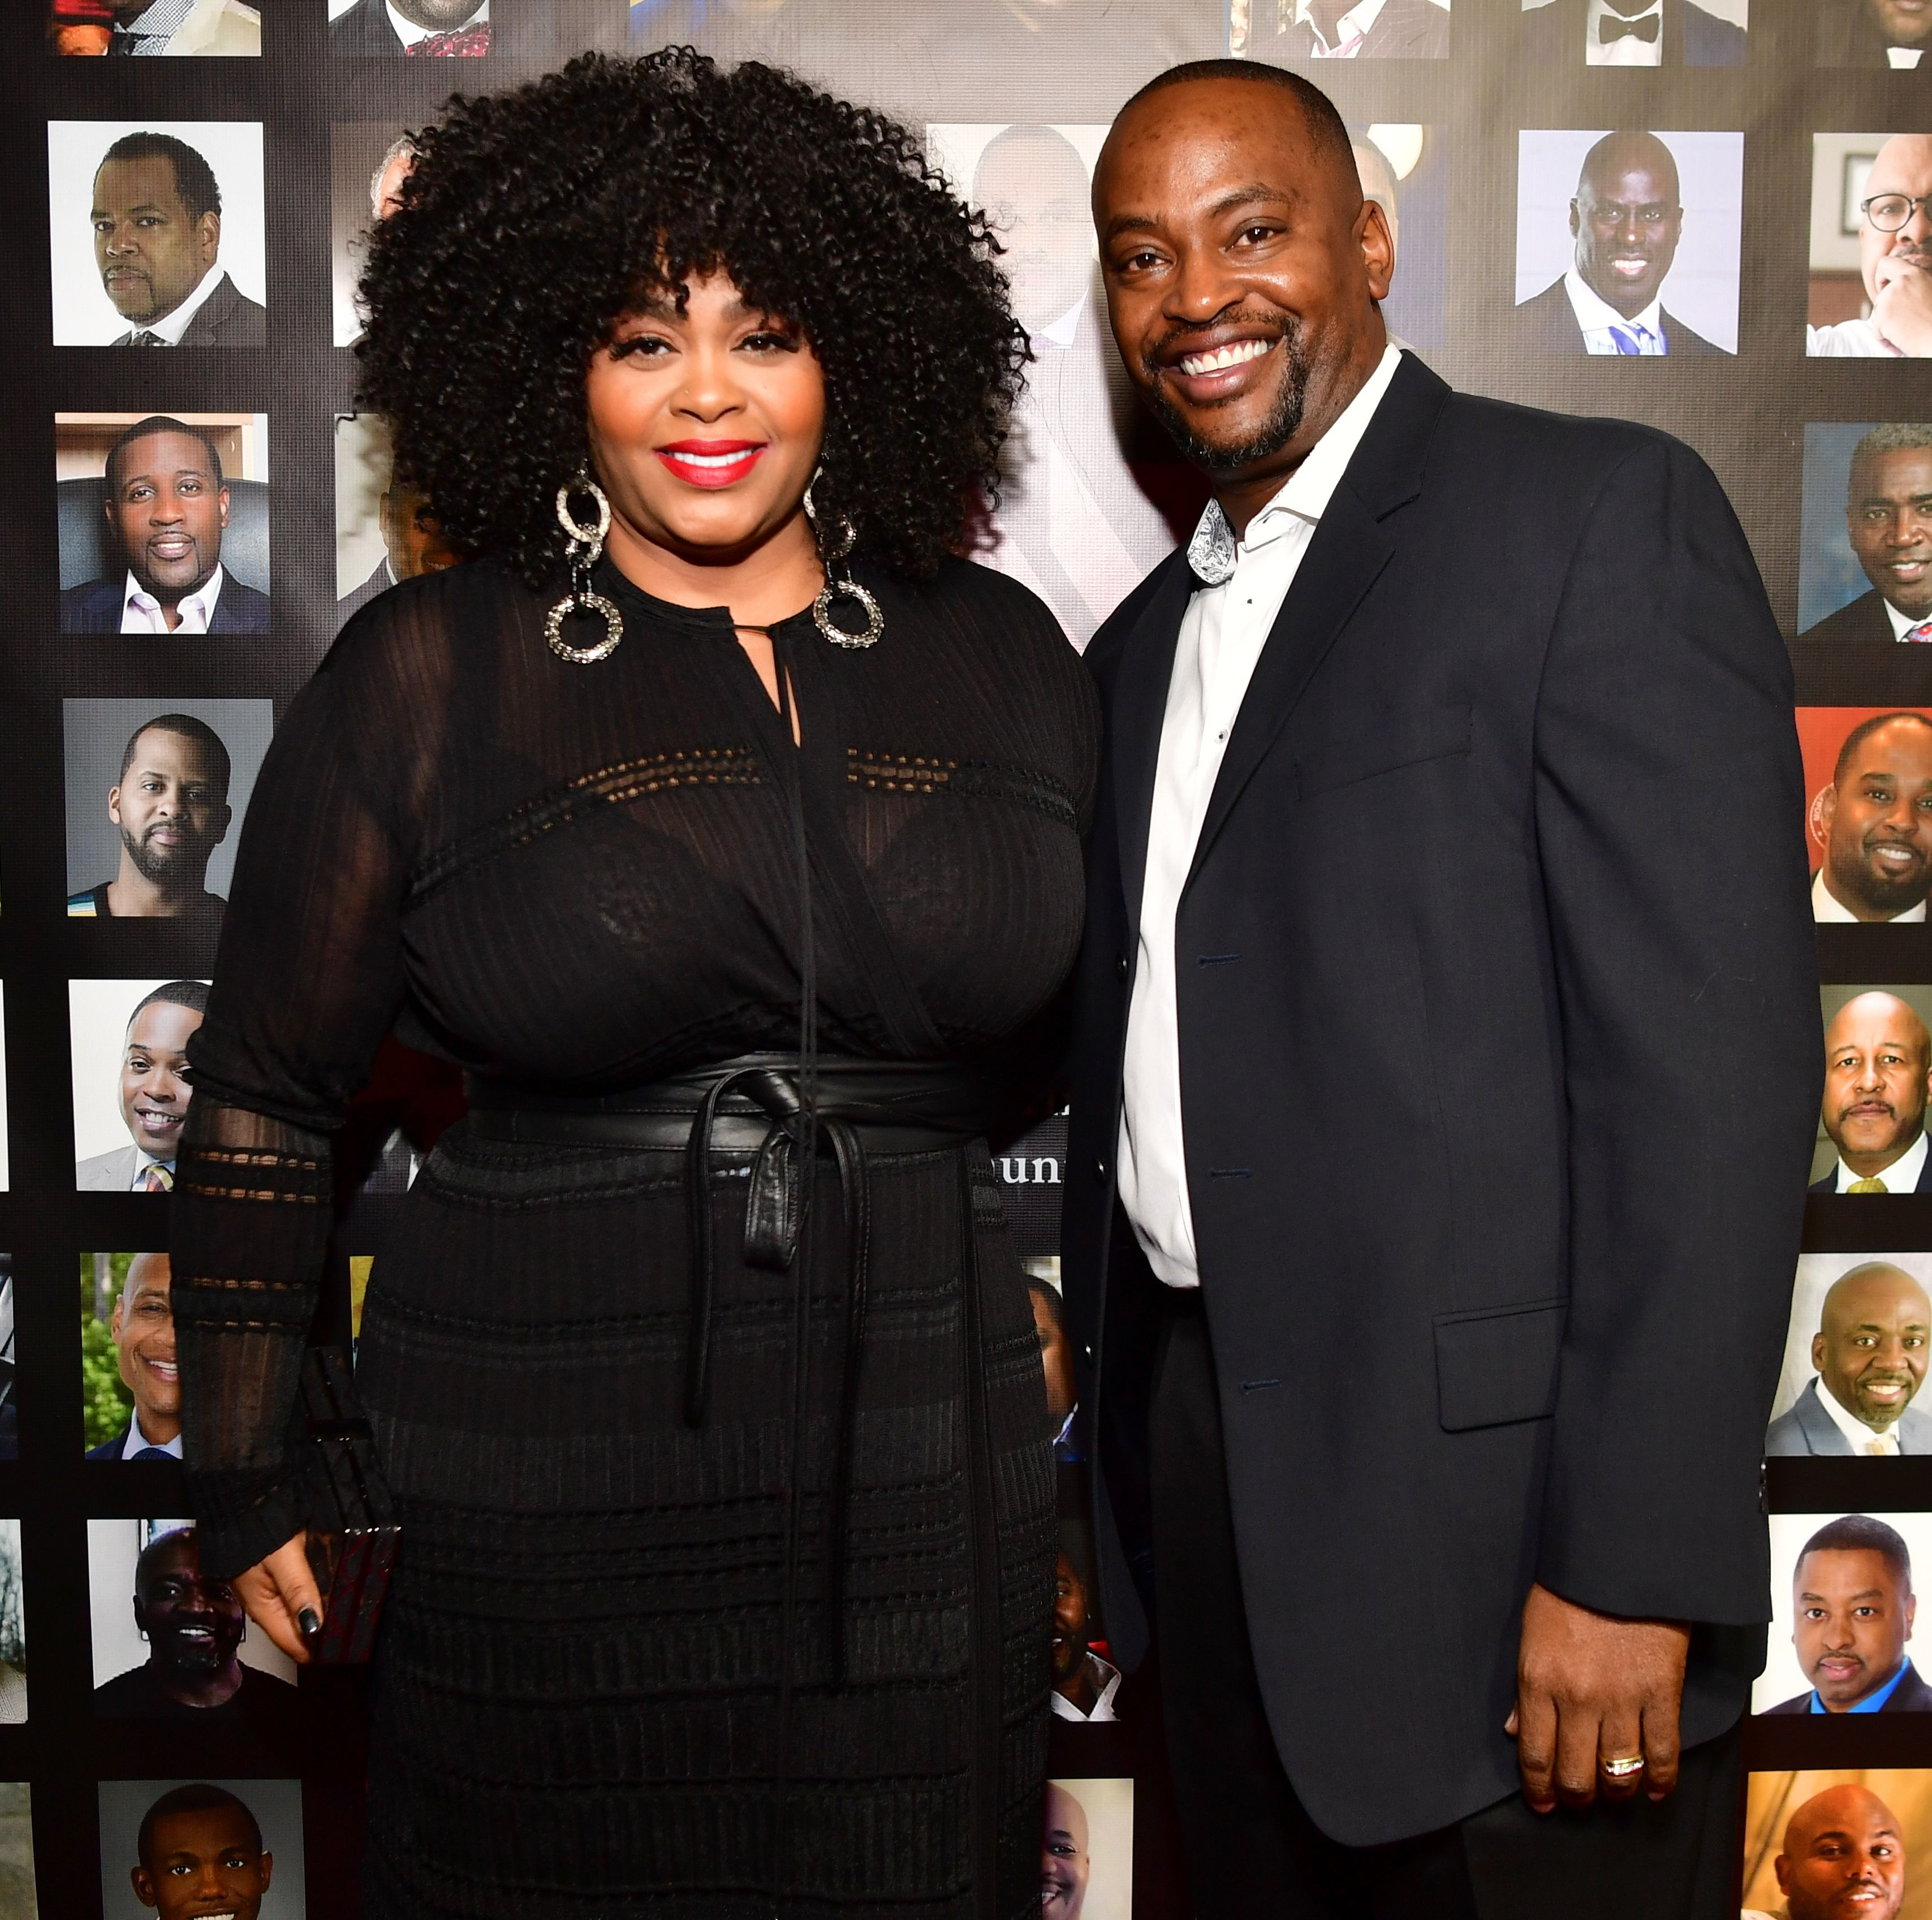 """Jill Scott and Mike Dobson at the """"The Made Man Awards 2017"""" in Atlanta, Georgia 